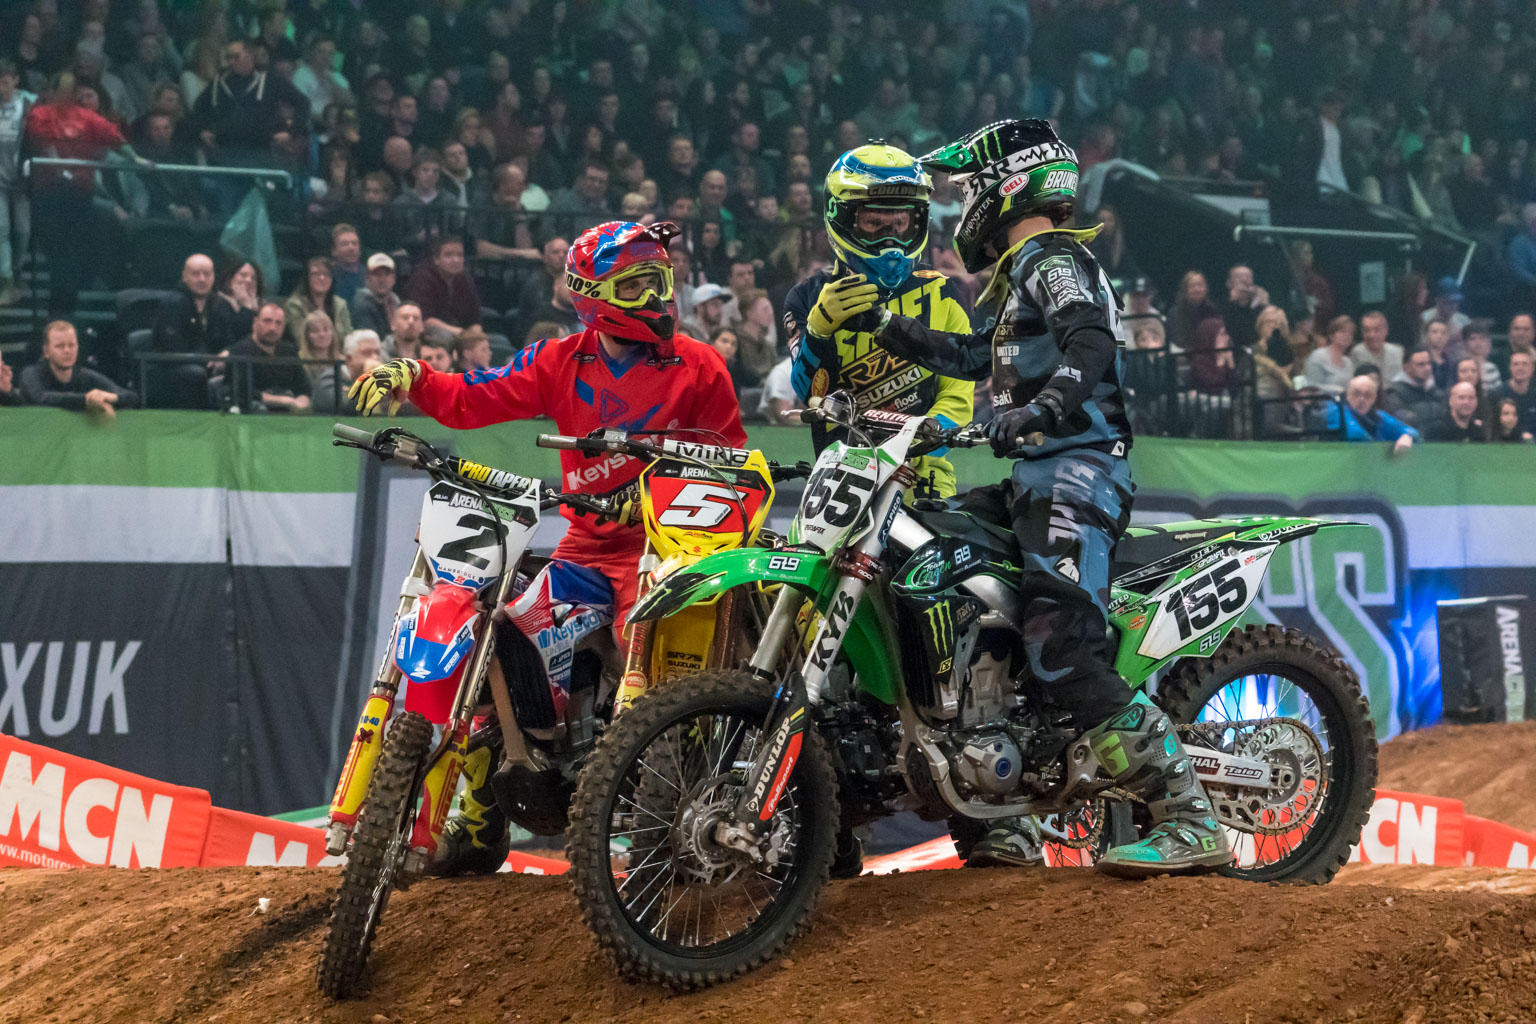 The action and emotion form riders and fans is electric in Arenacross